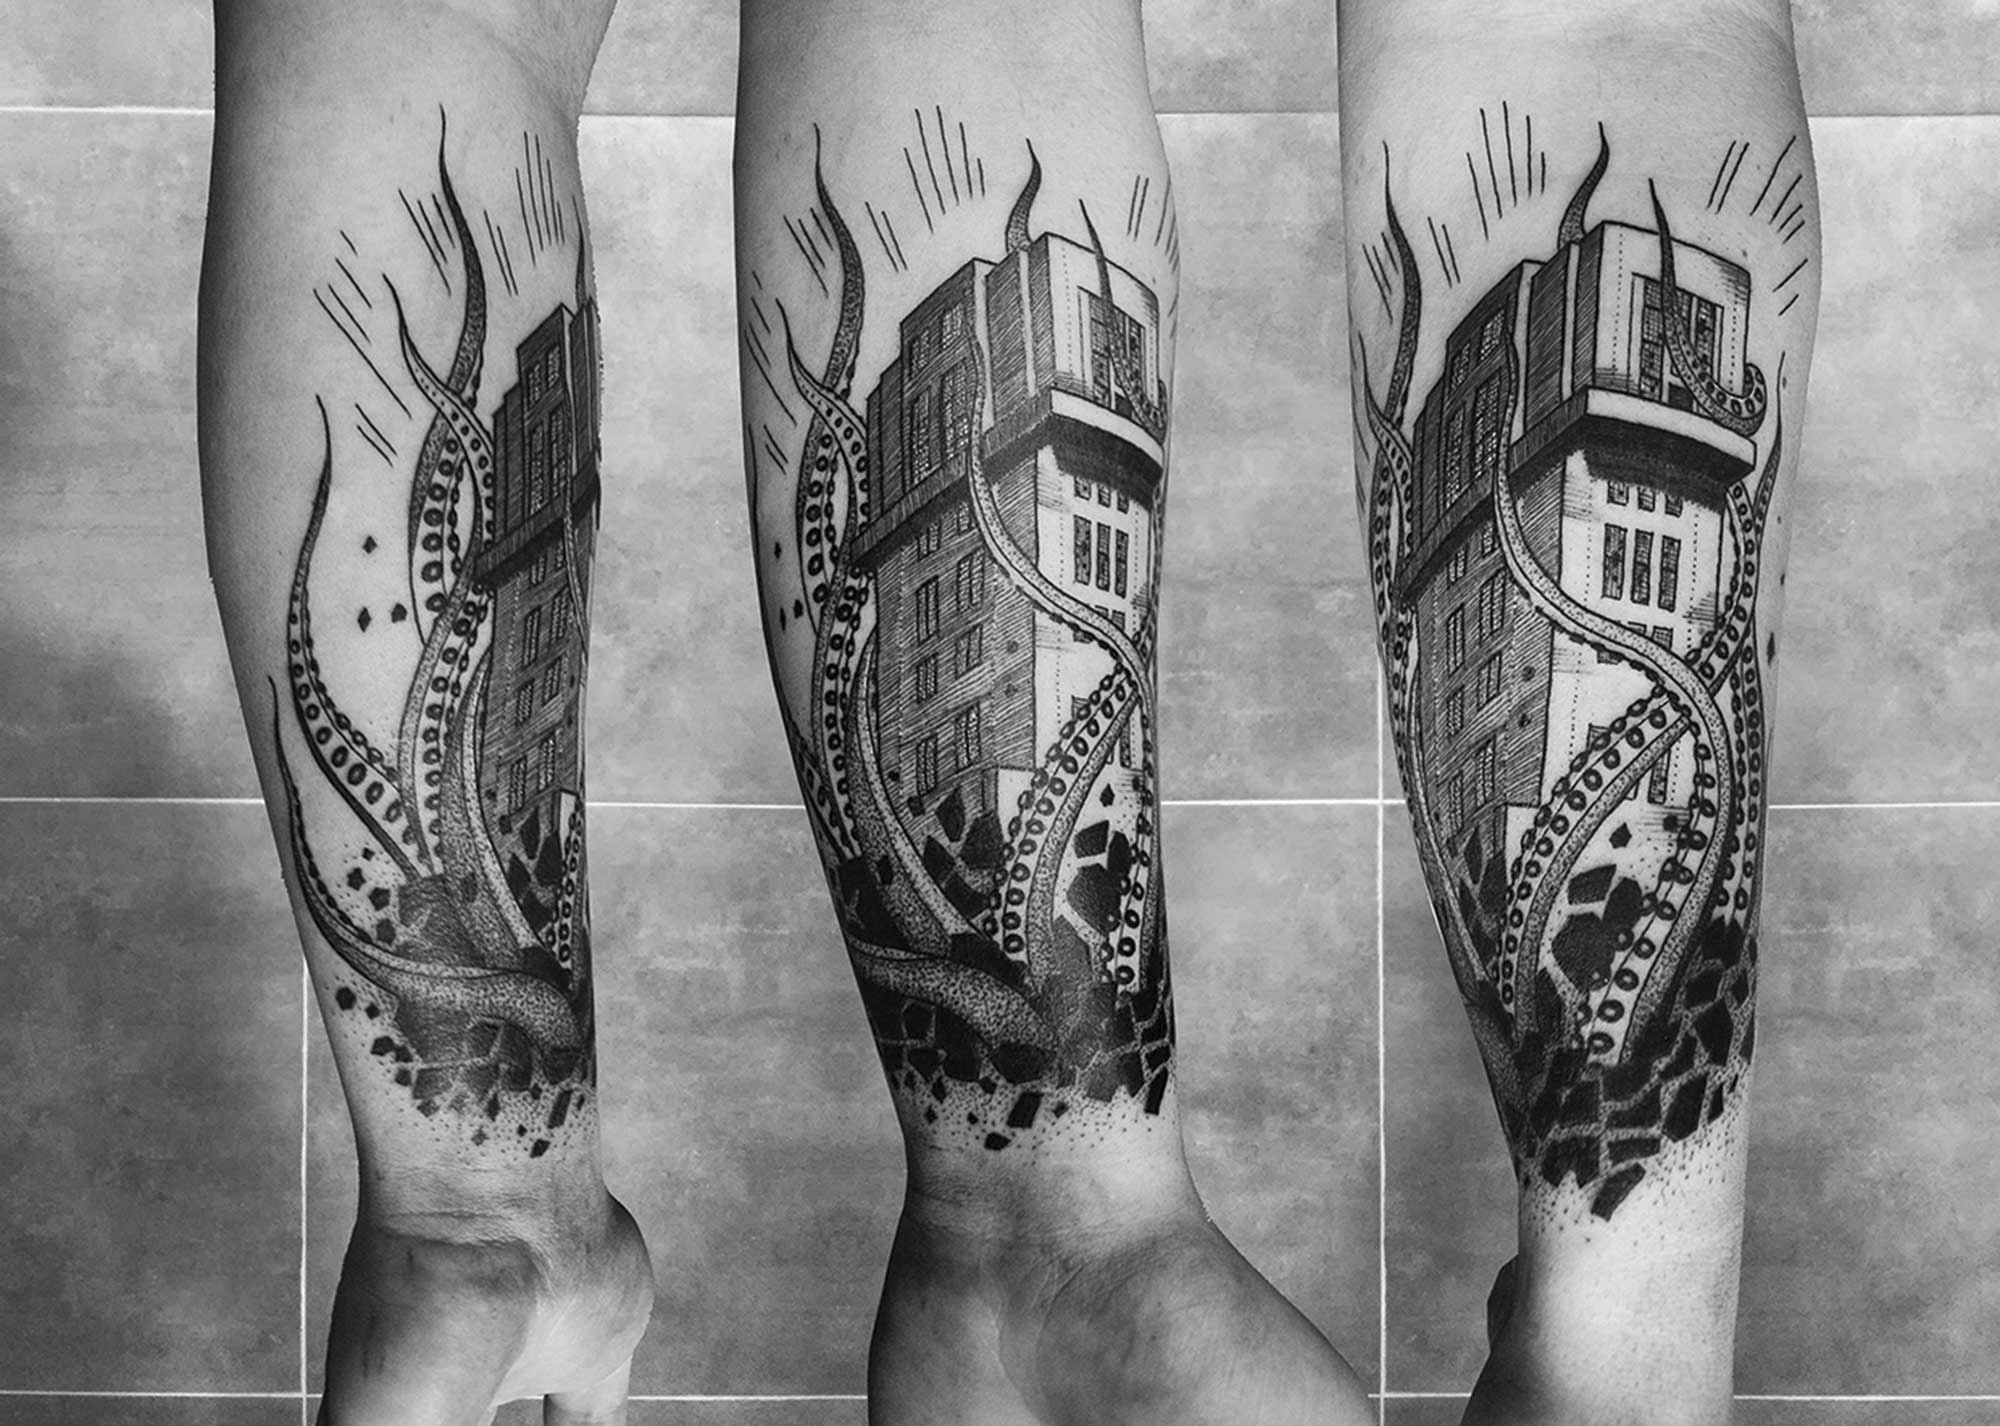 Architect Turned Tattoo Artist Builds Structured Imagery